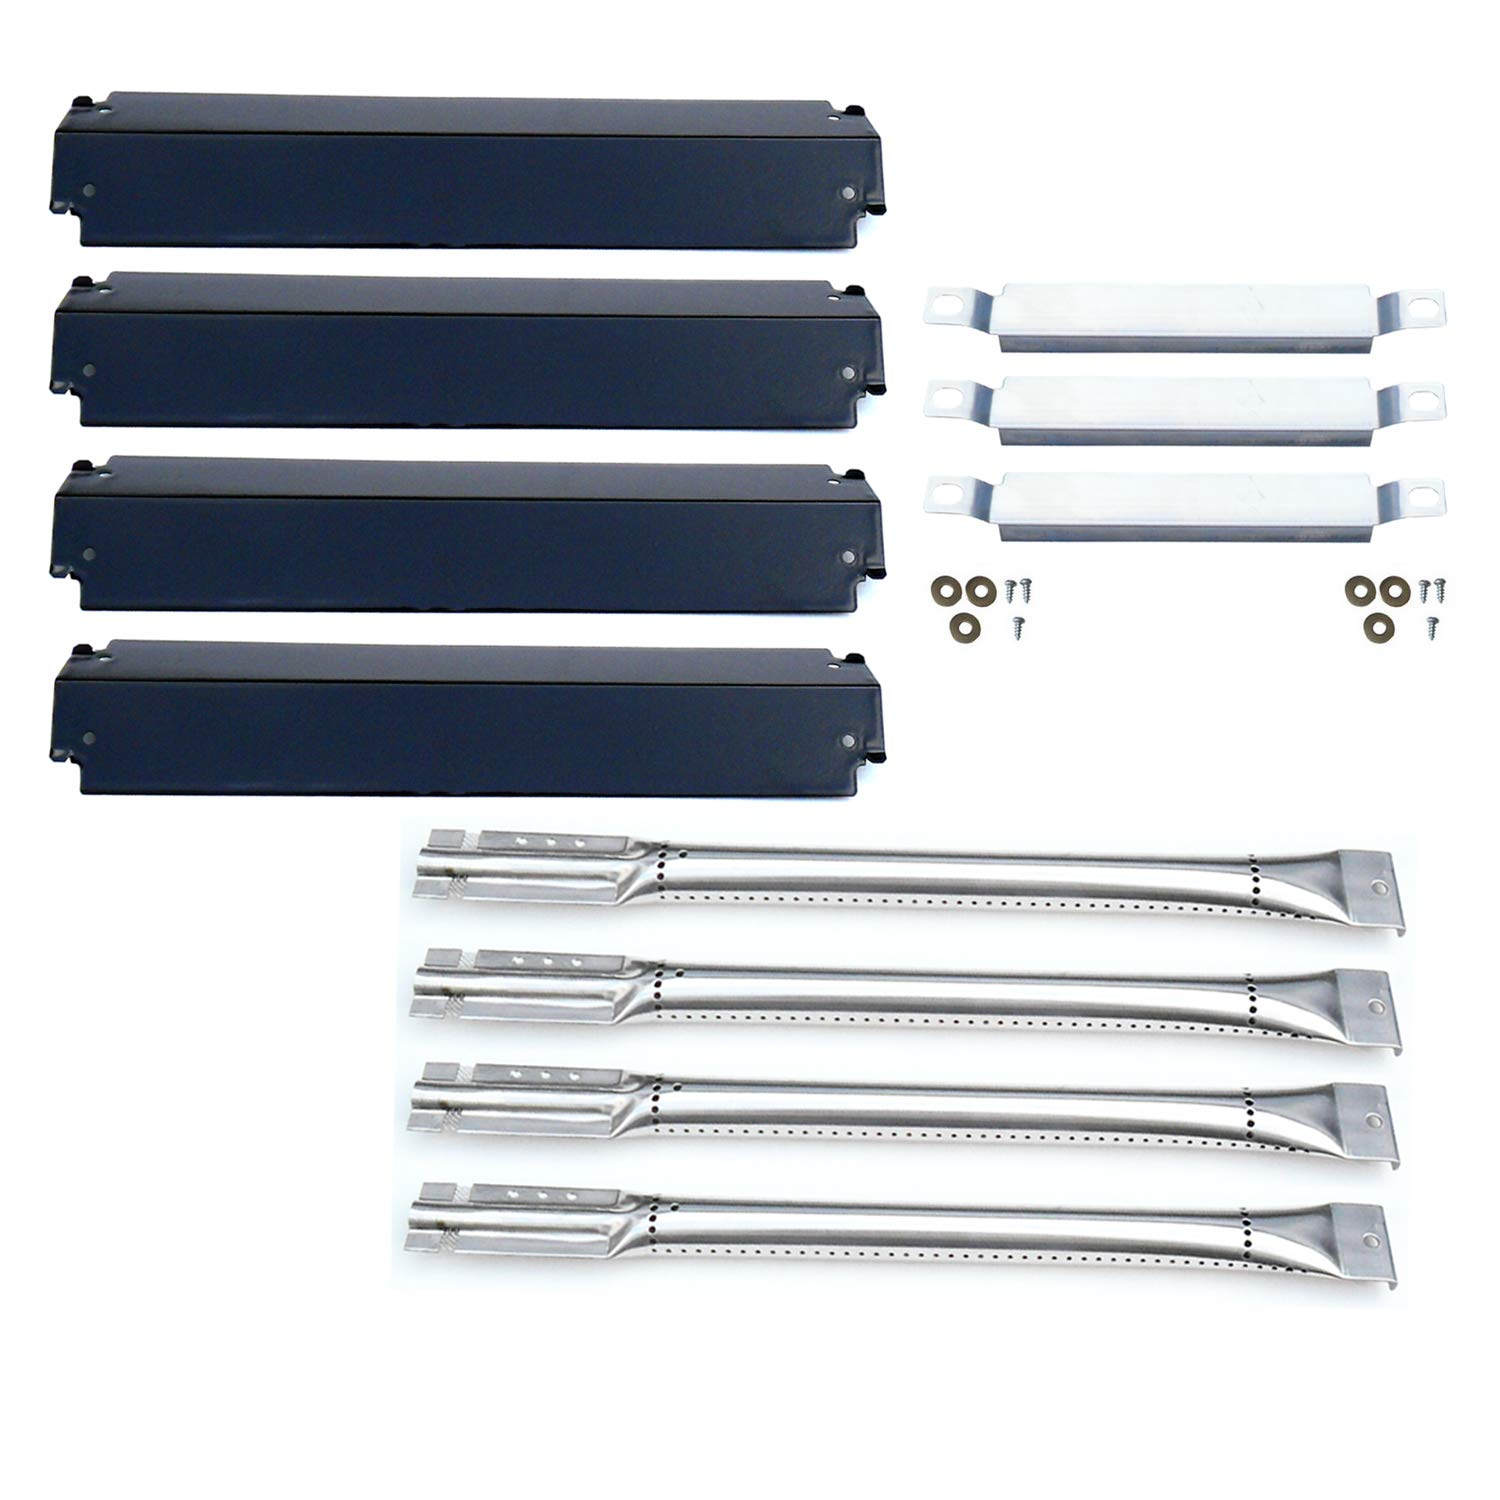 Direct store Parts Kit DG101 Replacement Charbroil Gas Grill Burners,Heat Plates and Crossover Tubes by Direct Store